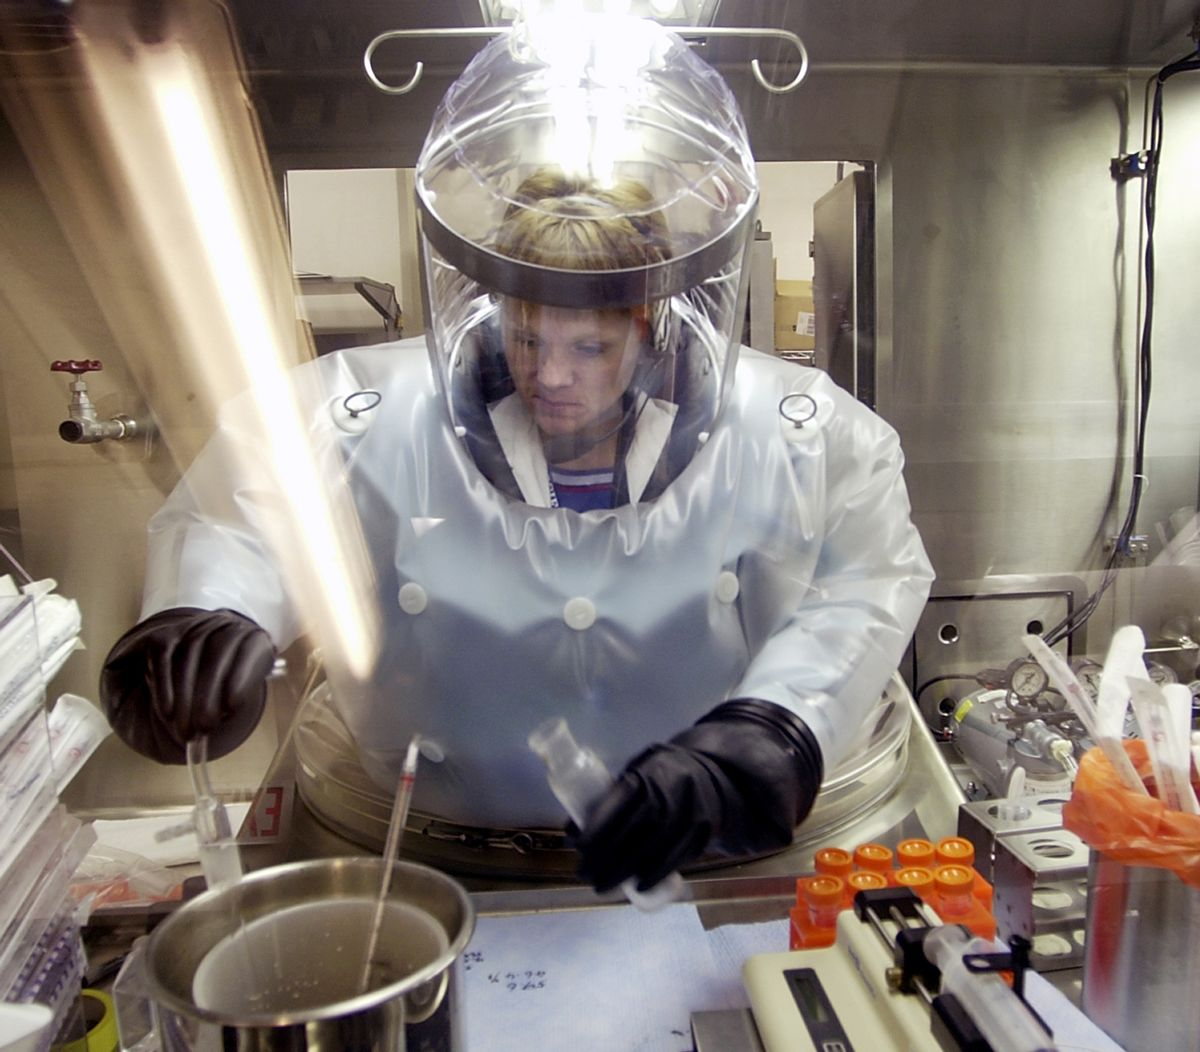 FILE - In this May 11, 2003, file photo, Microbiologist Ruth Bryan works with BG nerve agent simulant in Class III Glove Box in the Life Sciences Test Facility at Dugway Proving Ground, Utah. The specialized airtight enclosure is also used for hands-on work with anthrax and other deadly agents. The Centers for Disease Control and Prevention said it is investigating what the Pentagon called an inadvertent shipment of live anthrax spores to government and commercial laboratories in as many as nine states, as well as one overseas, that expected to receive dead spores. (AP Photo/Douglas C. Pizac, File) (AP)